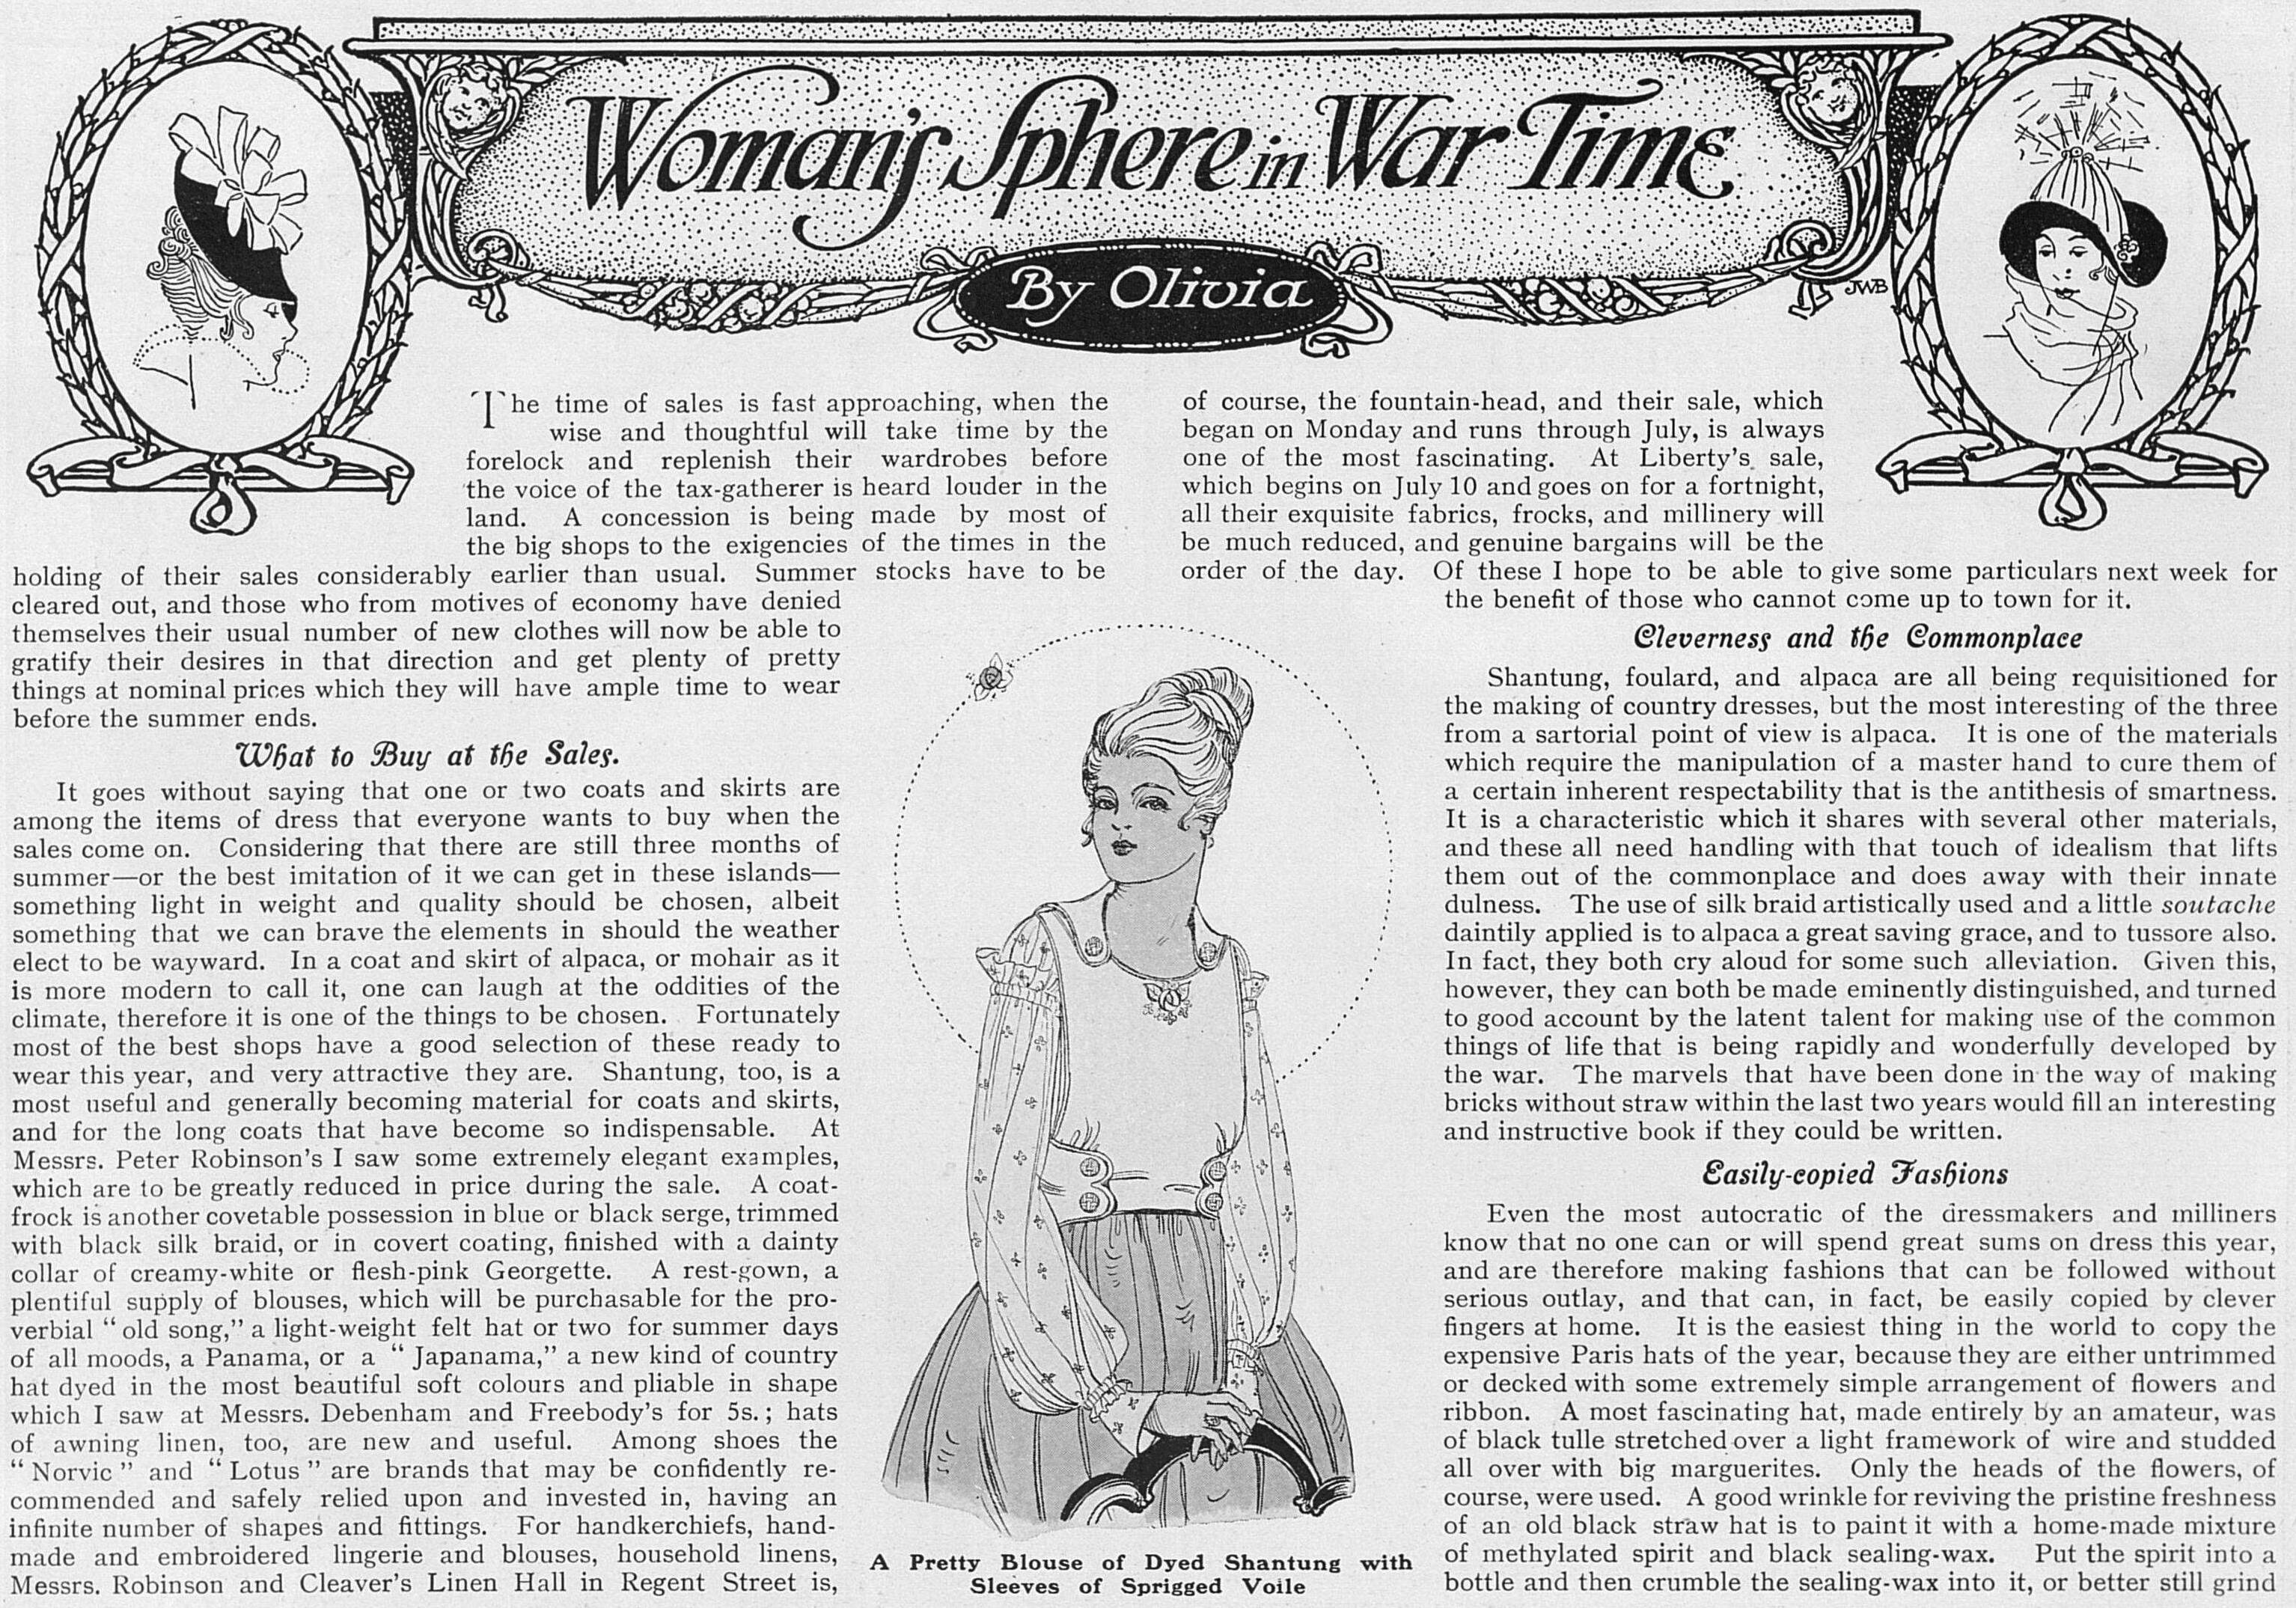 WomansSphereInWarTime_1Jul1916